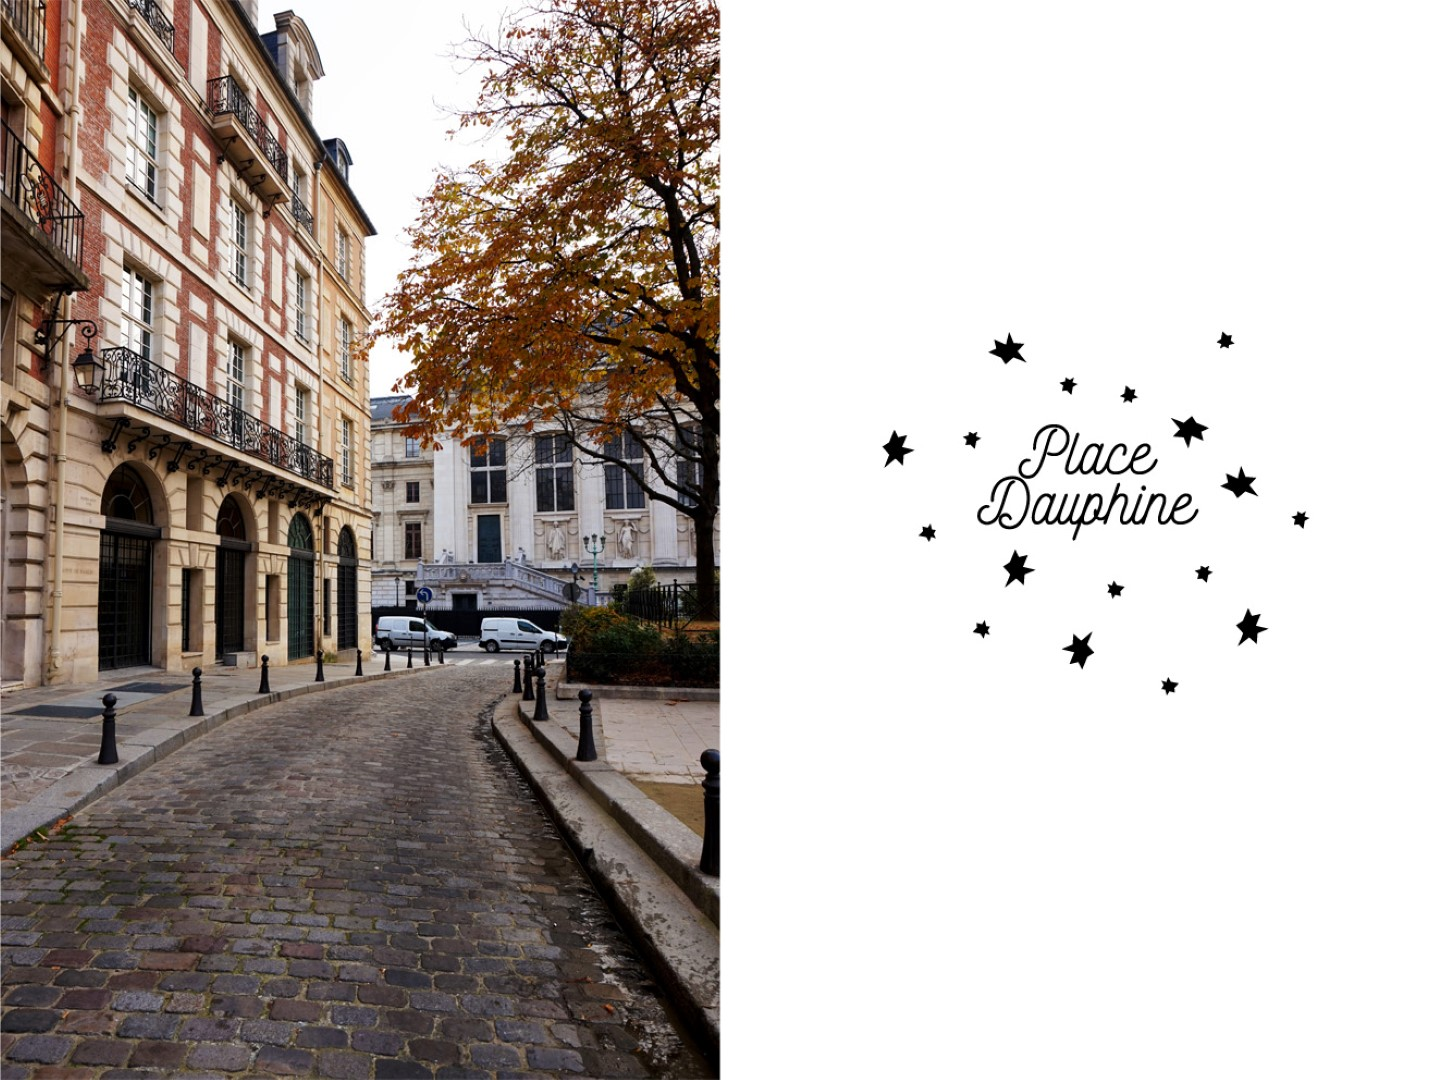 20161213_place_dauphine-large